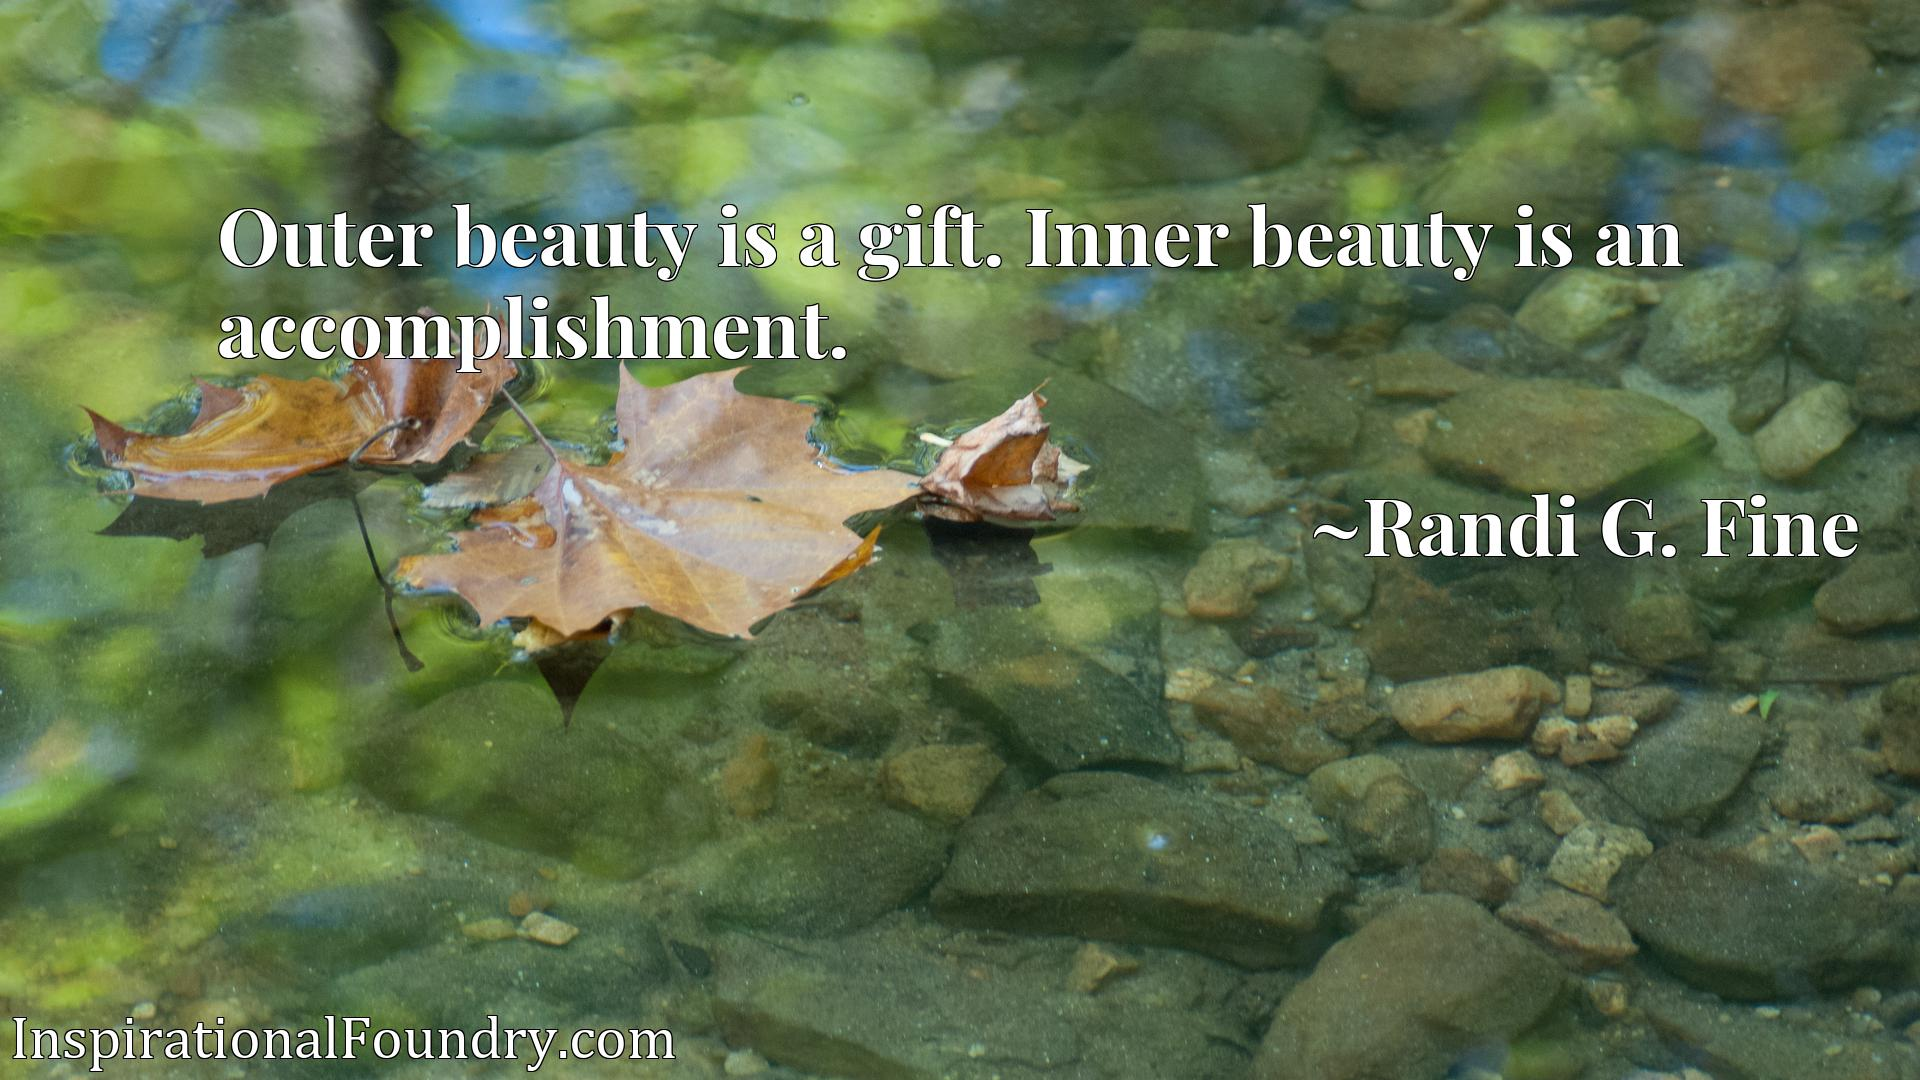 Outer beauty is a gift. Inner beauty is an accomplishment.